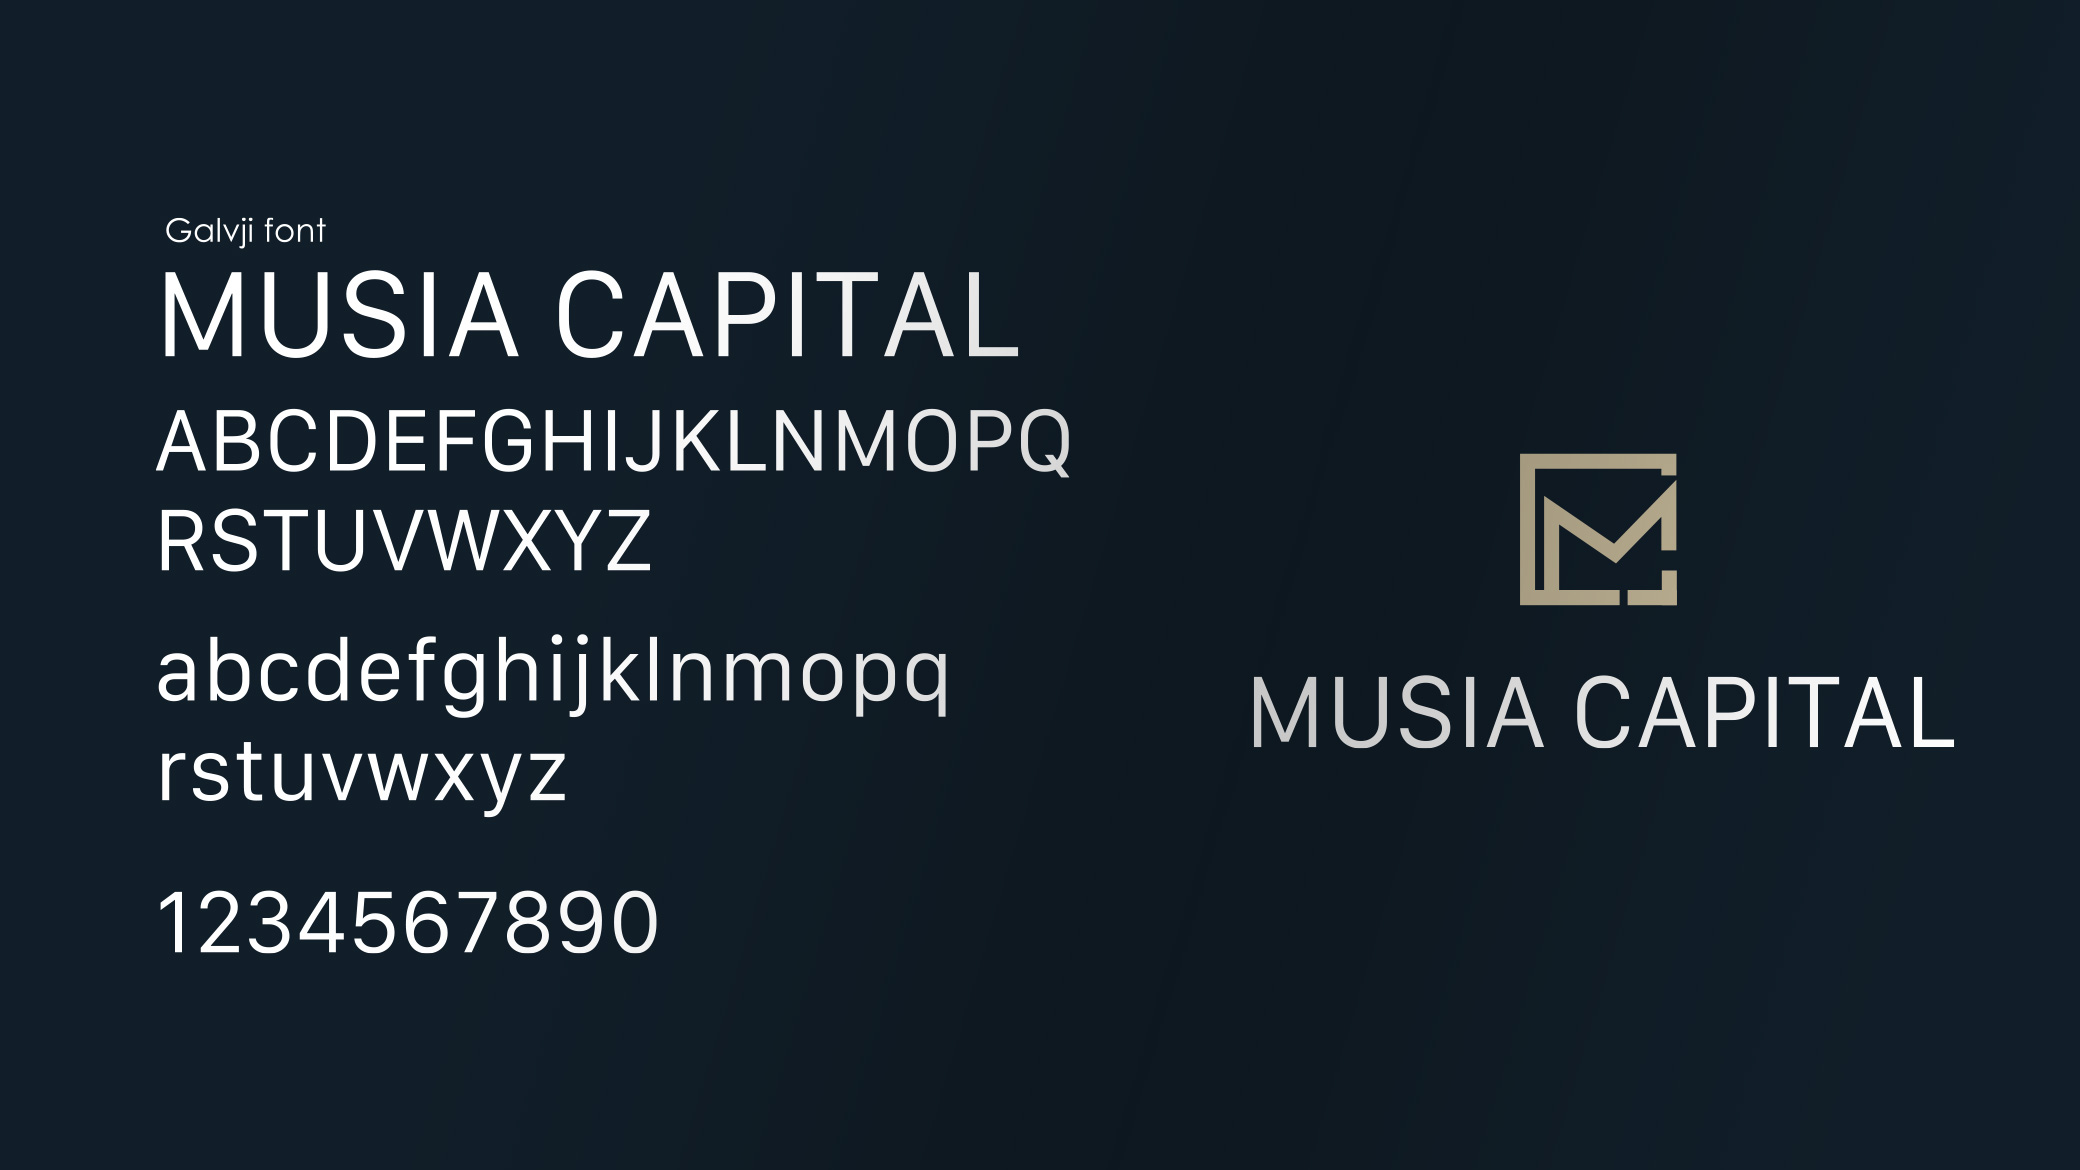 fonts of Musia Capital